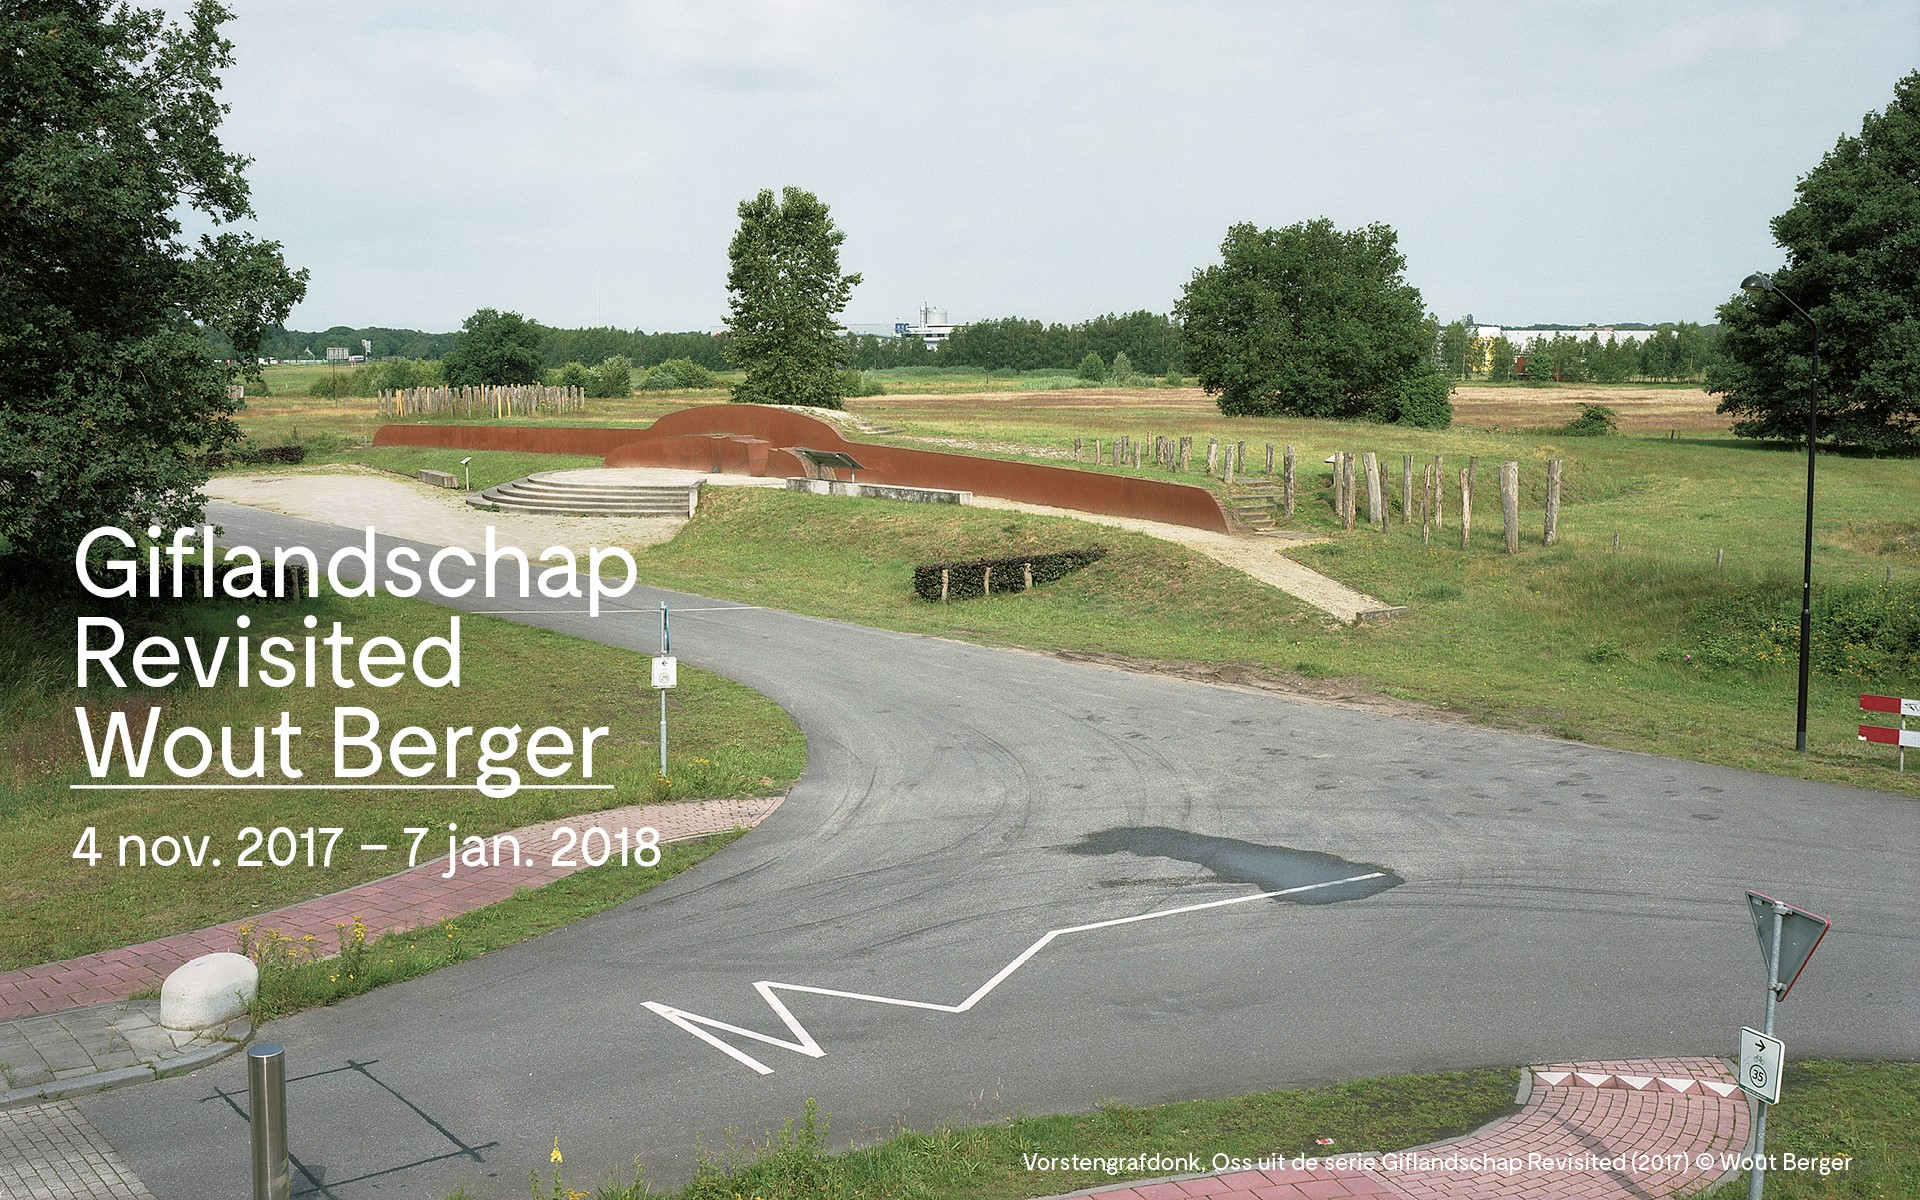 giflandschap-revisited-wout-berger